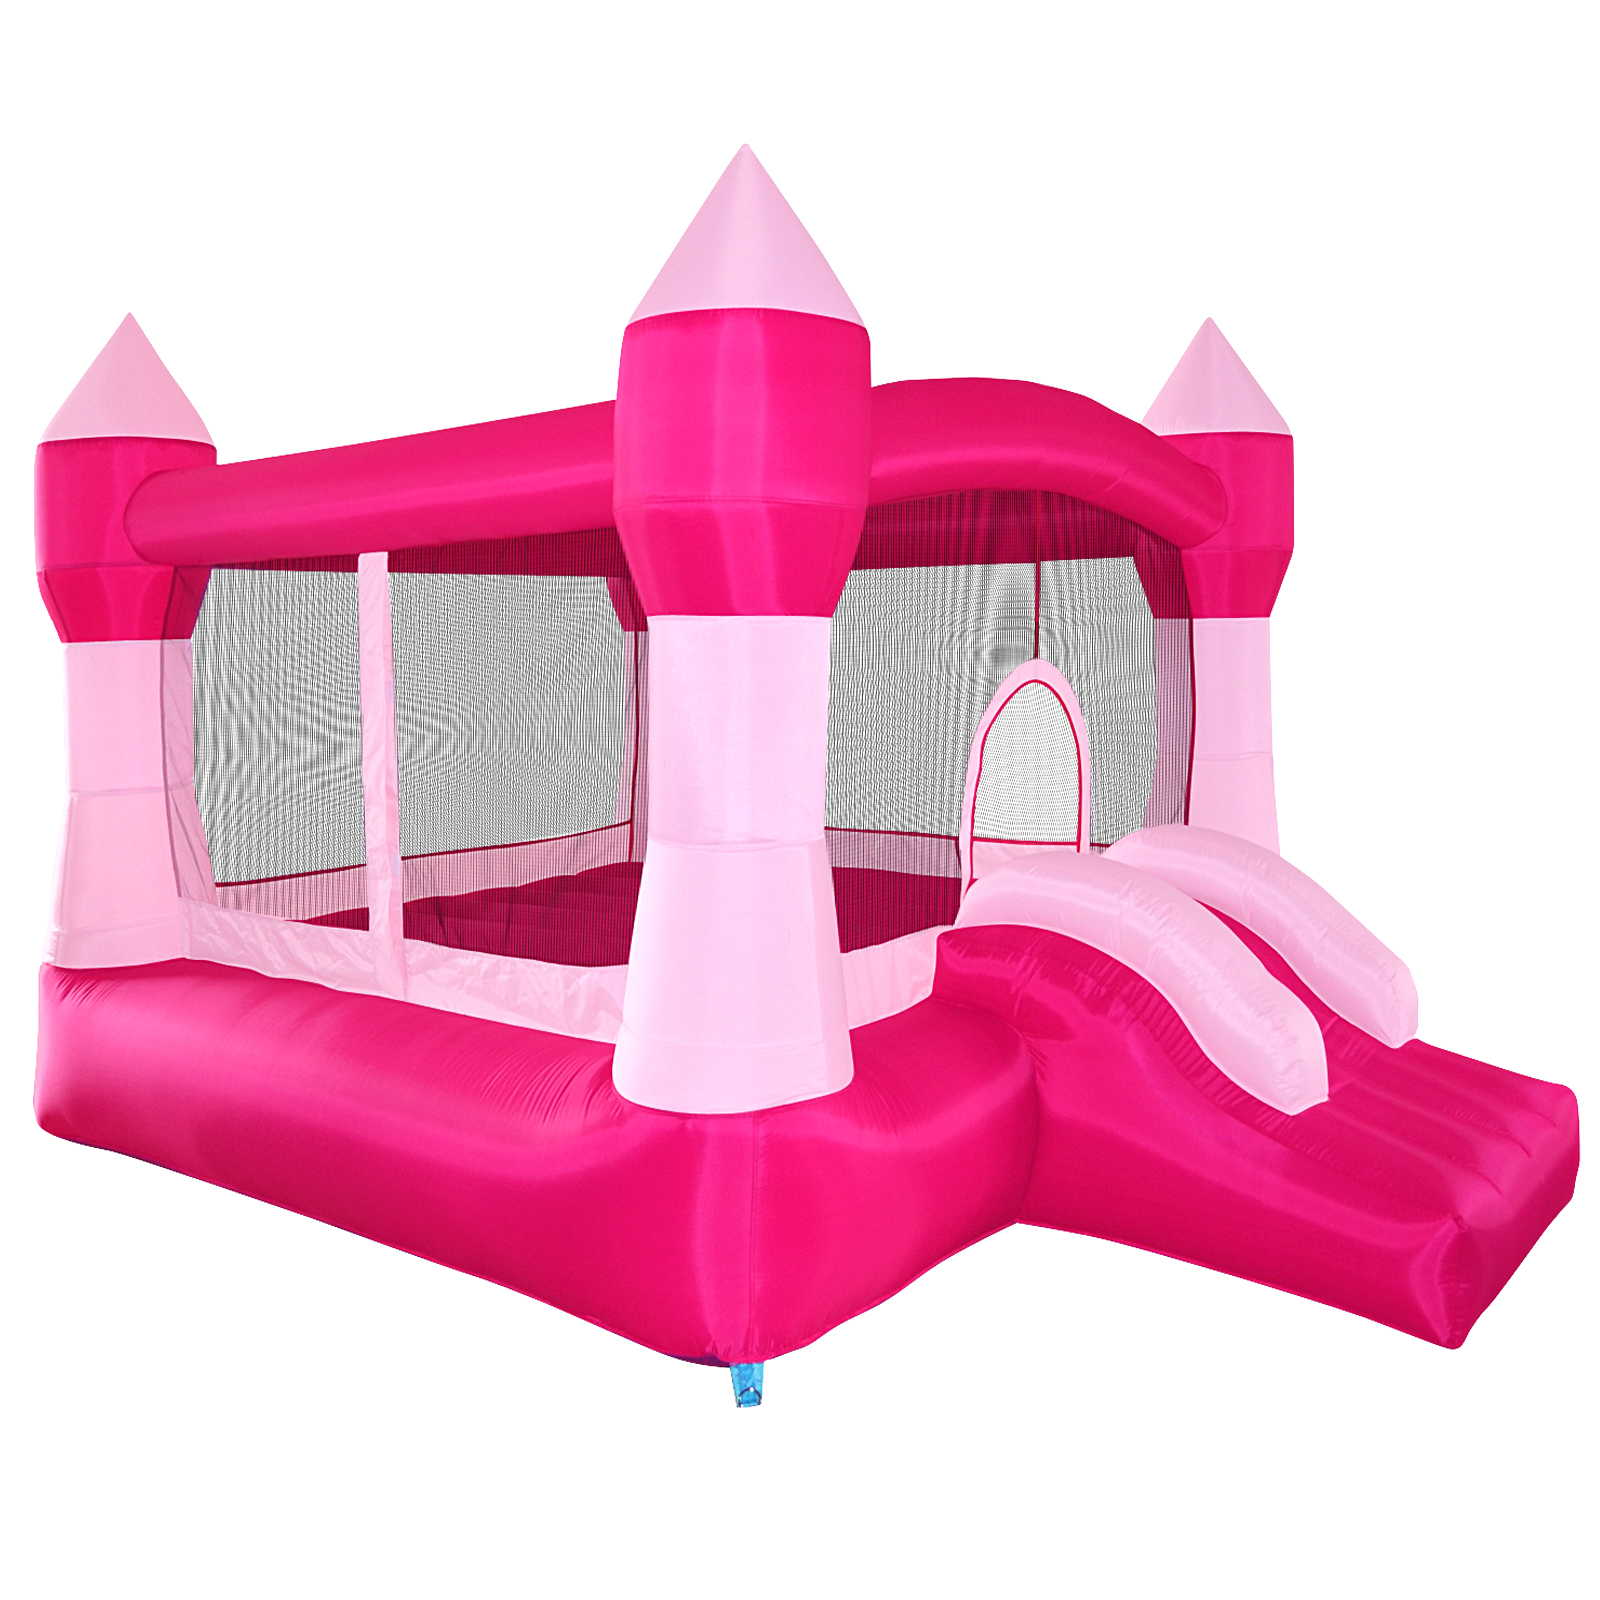 Cloud 9 Princess Inflatable Bounce House Pink Castle Theme by Cloud 9